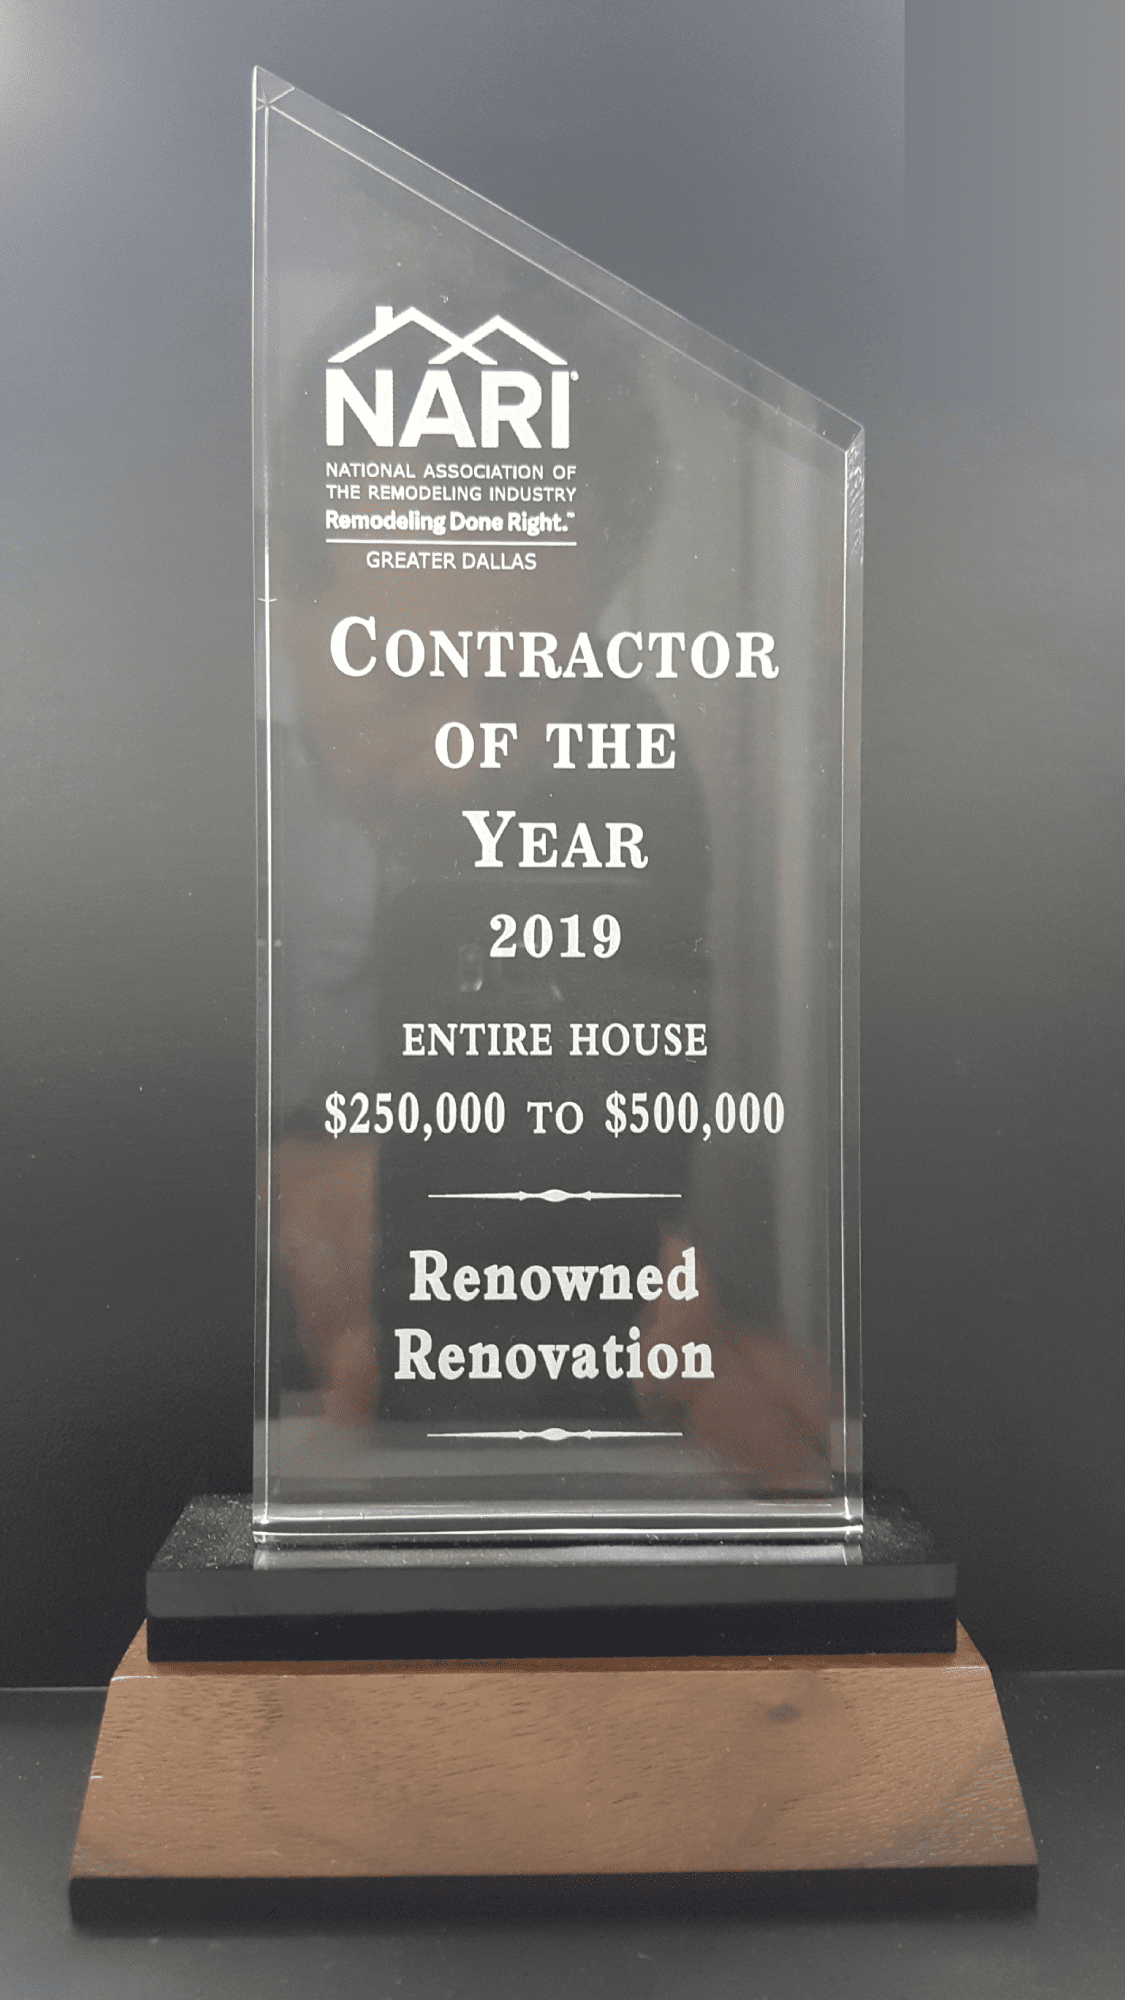 Dallas-NARI-2019-Contractor-of-the-Year-Entire-House-Remodel-$250K-$500K-Award